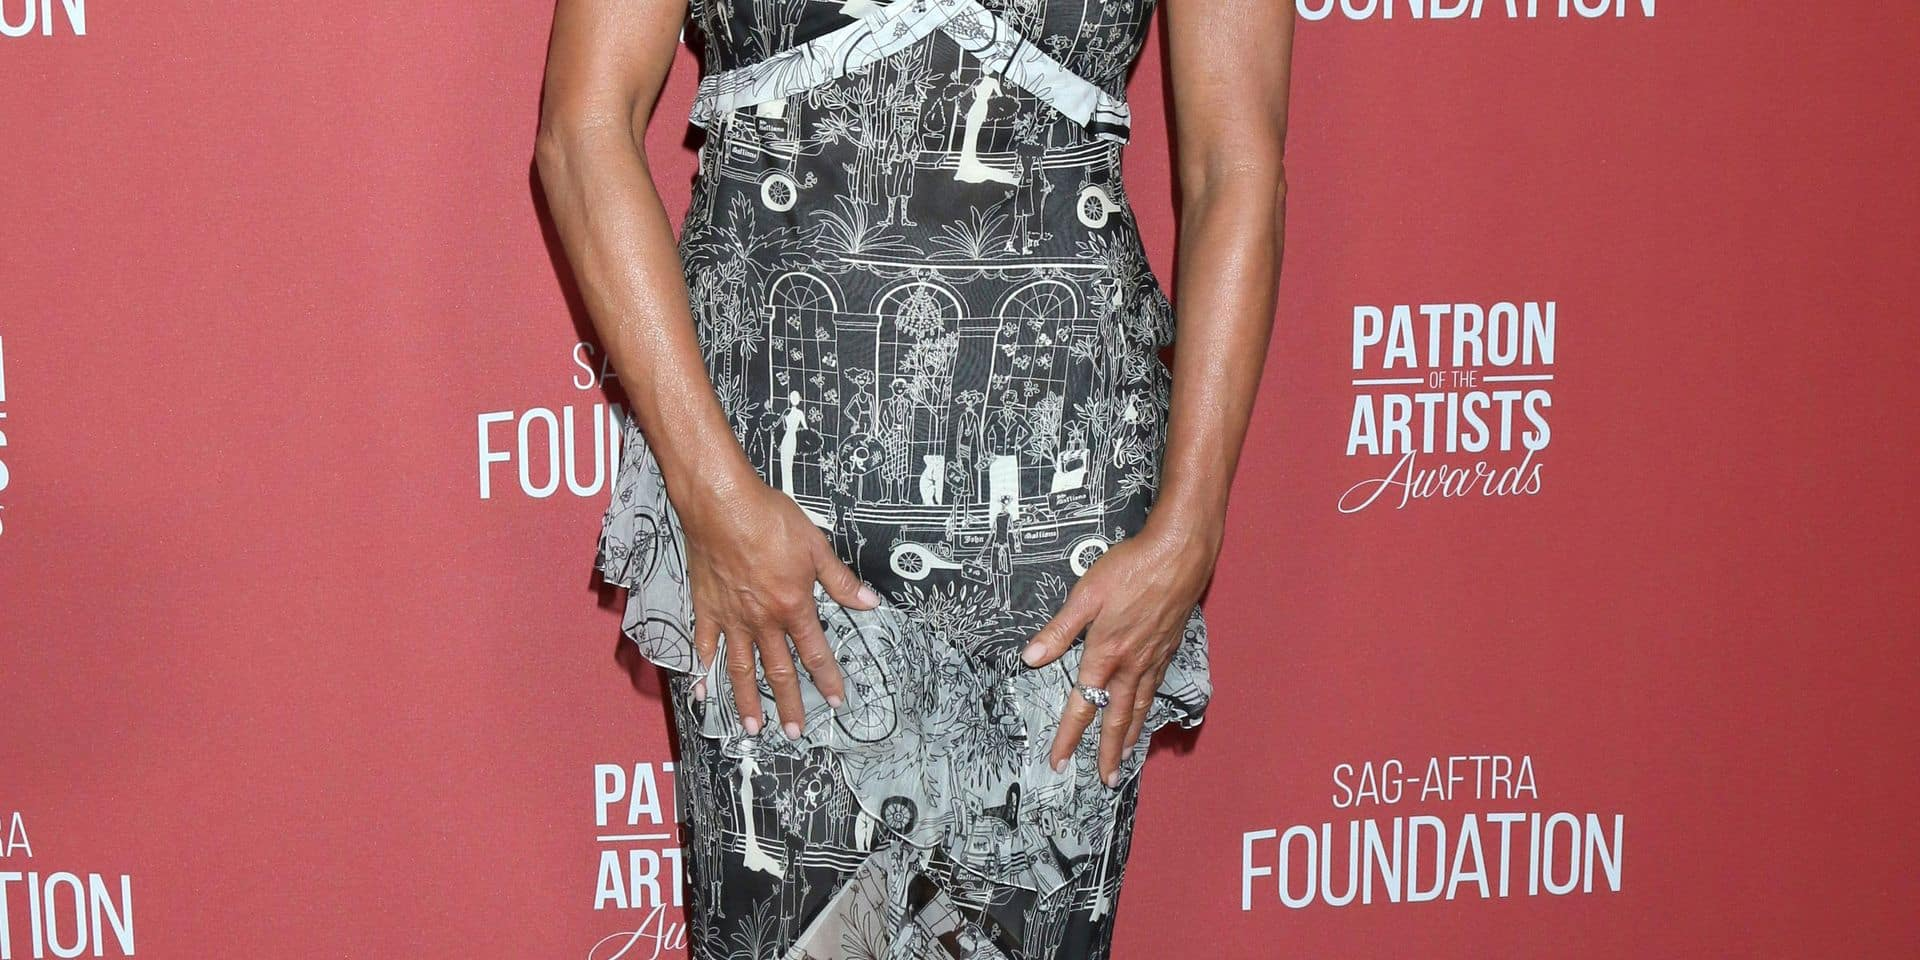 4th Annual Patron of the Artists Awards